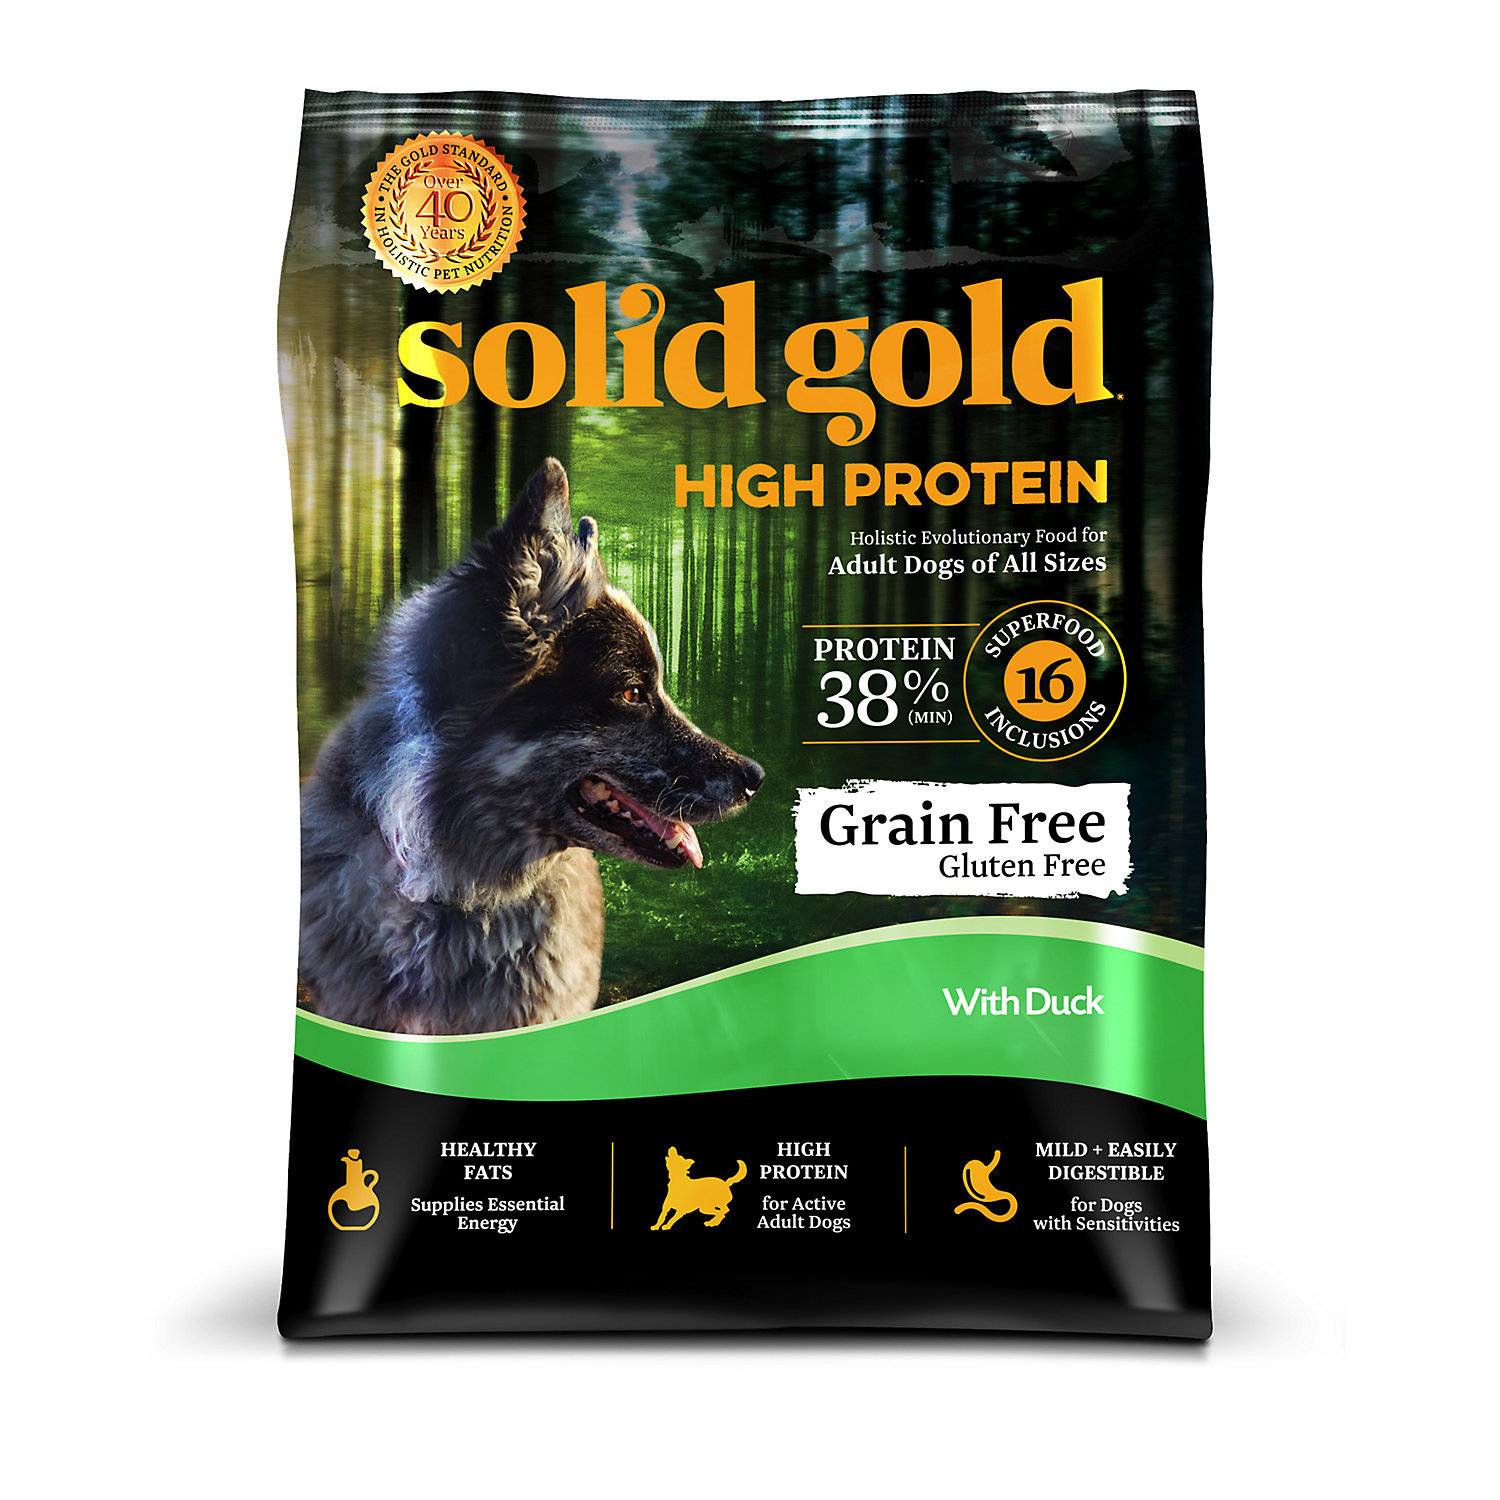 Solid Gold High Protein Grain and Gluten Free Dry Dog Food, Duck, 22 lbs (1/19) (A.Q4)